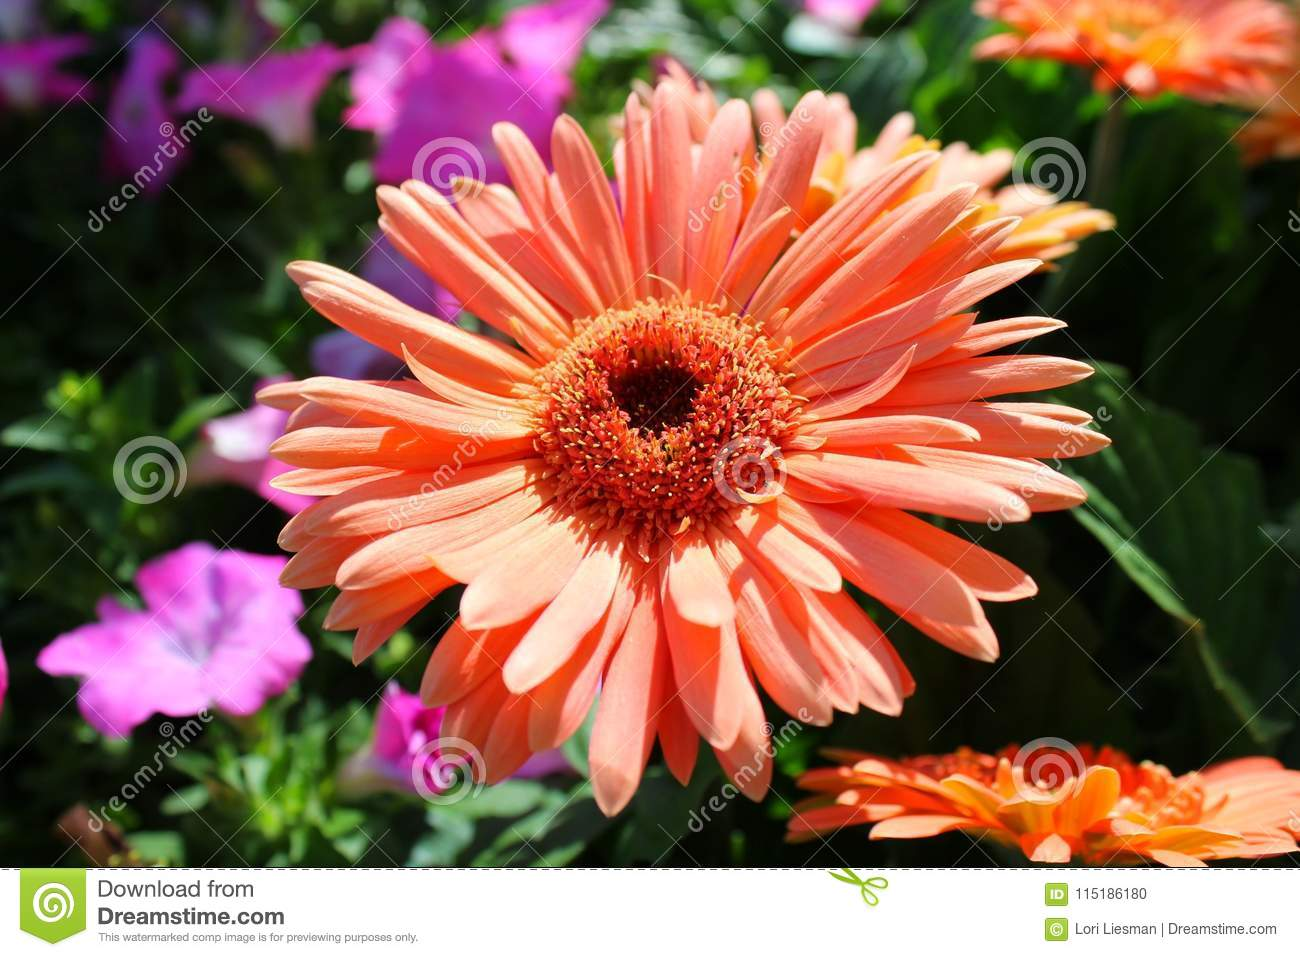 A Large Peach Colored Daisy Looking Flower In A Garden Stock Photo